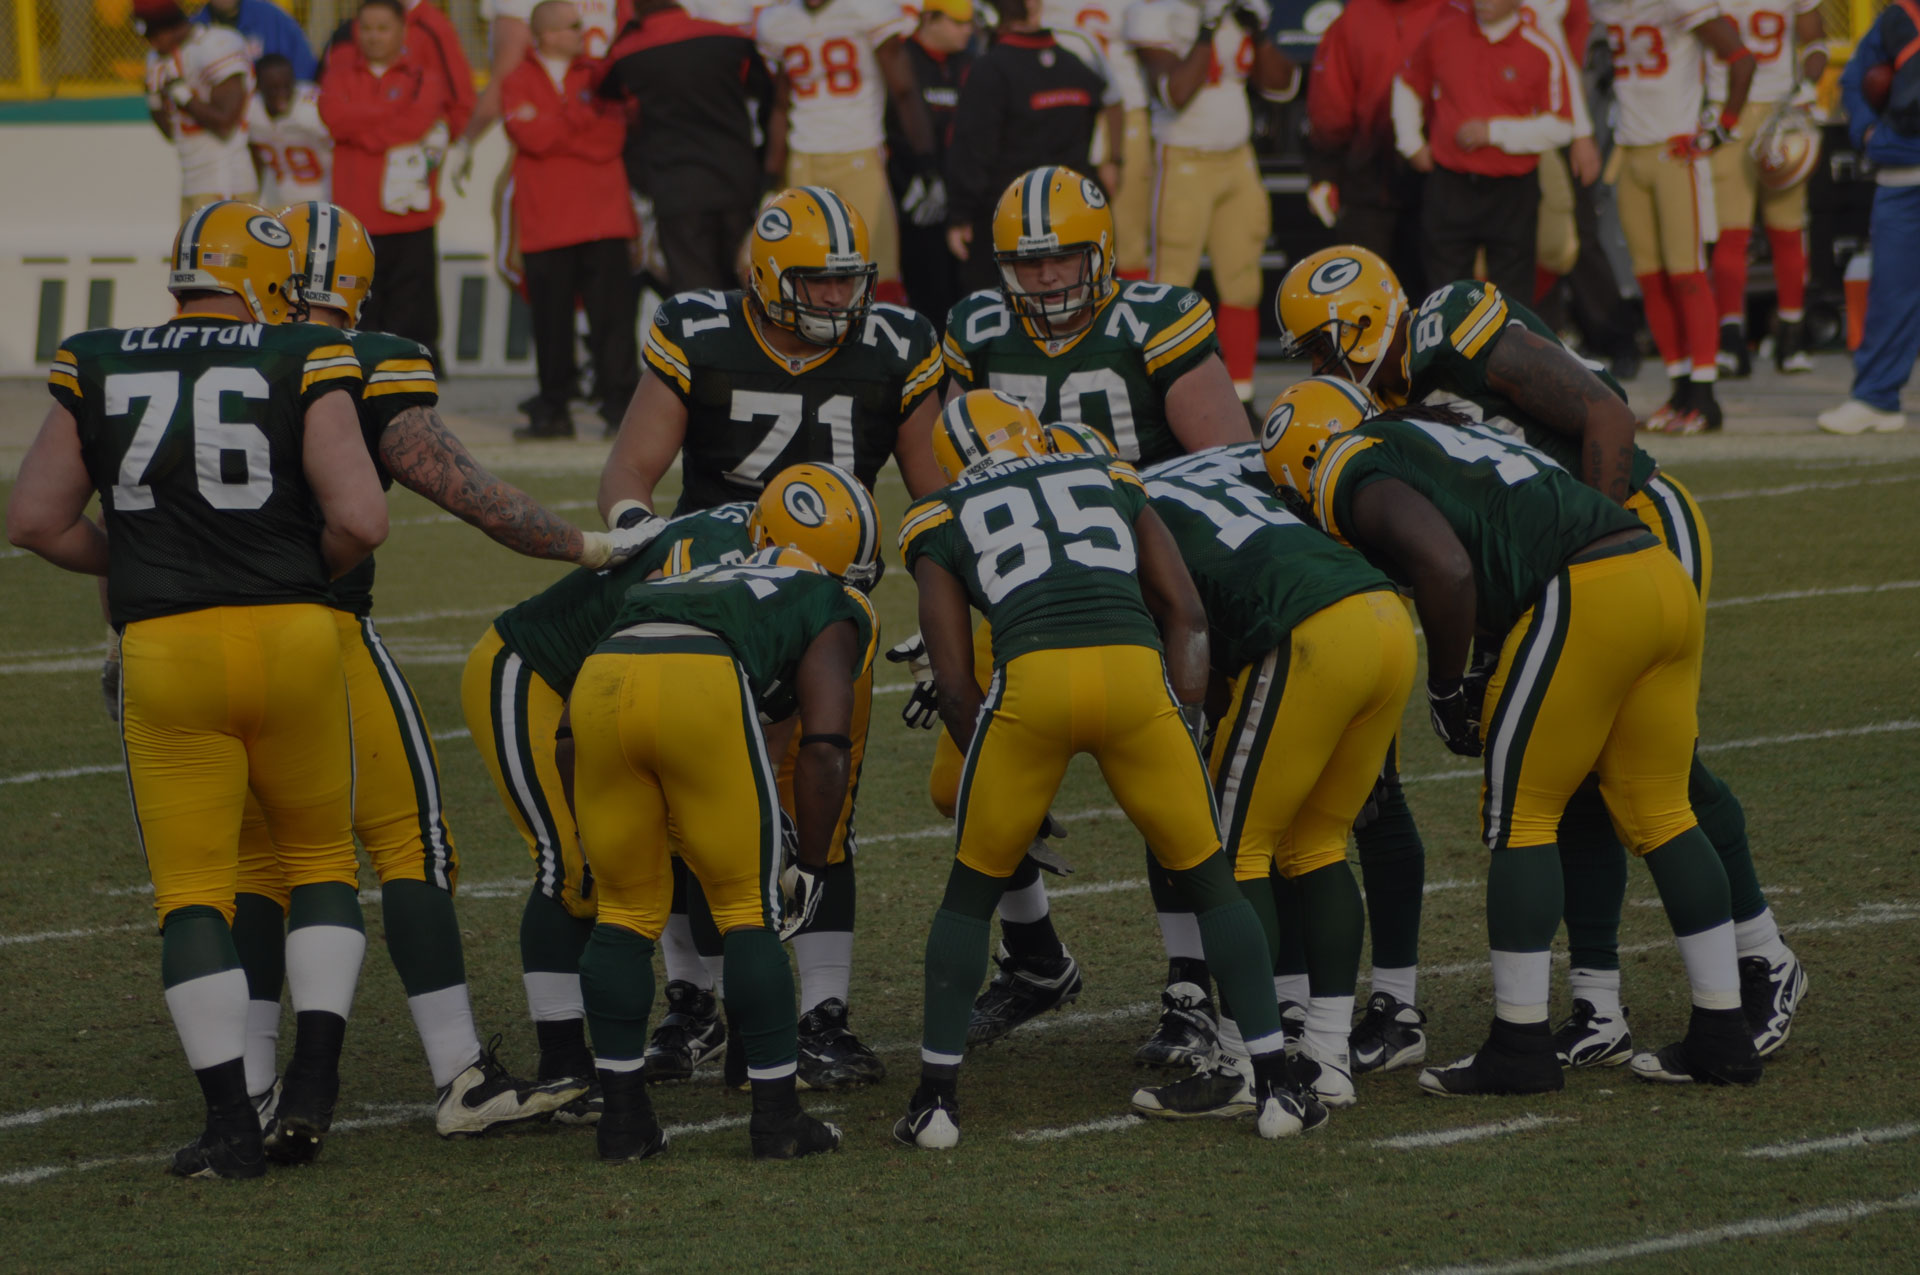 Green Bay Packers offense with quarterback Aaron Rodgers huddles in a game at Lambeau